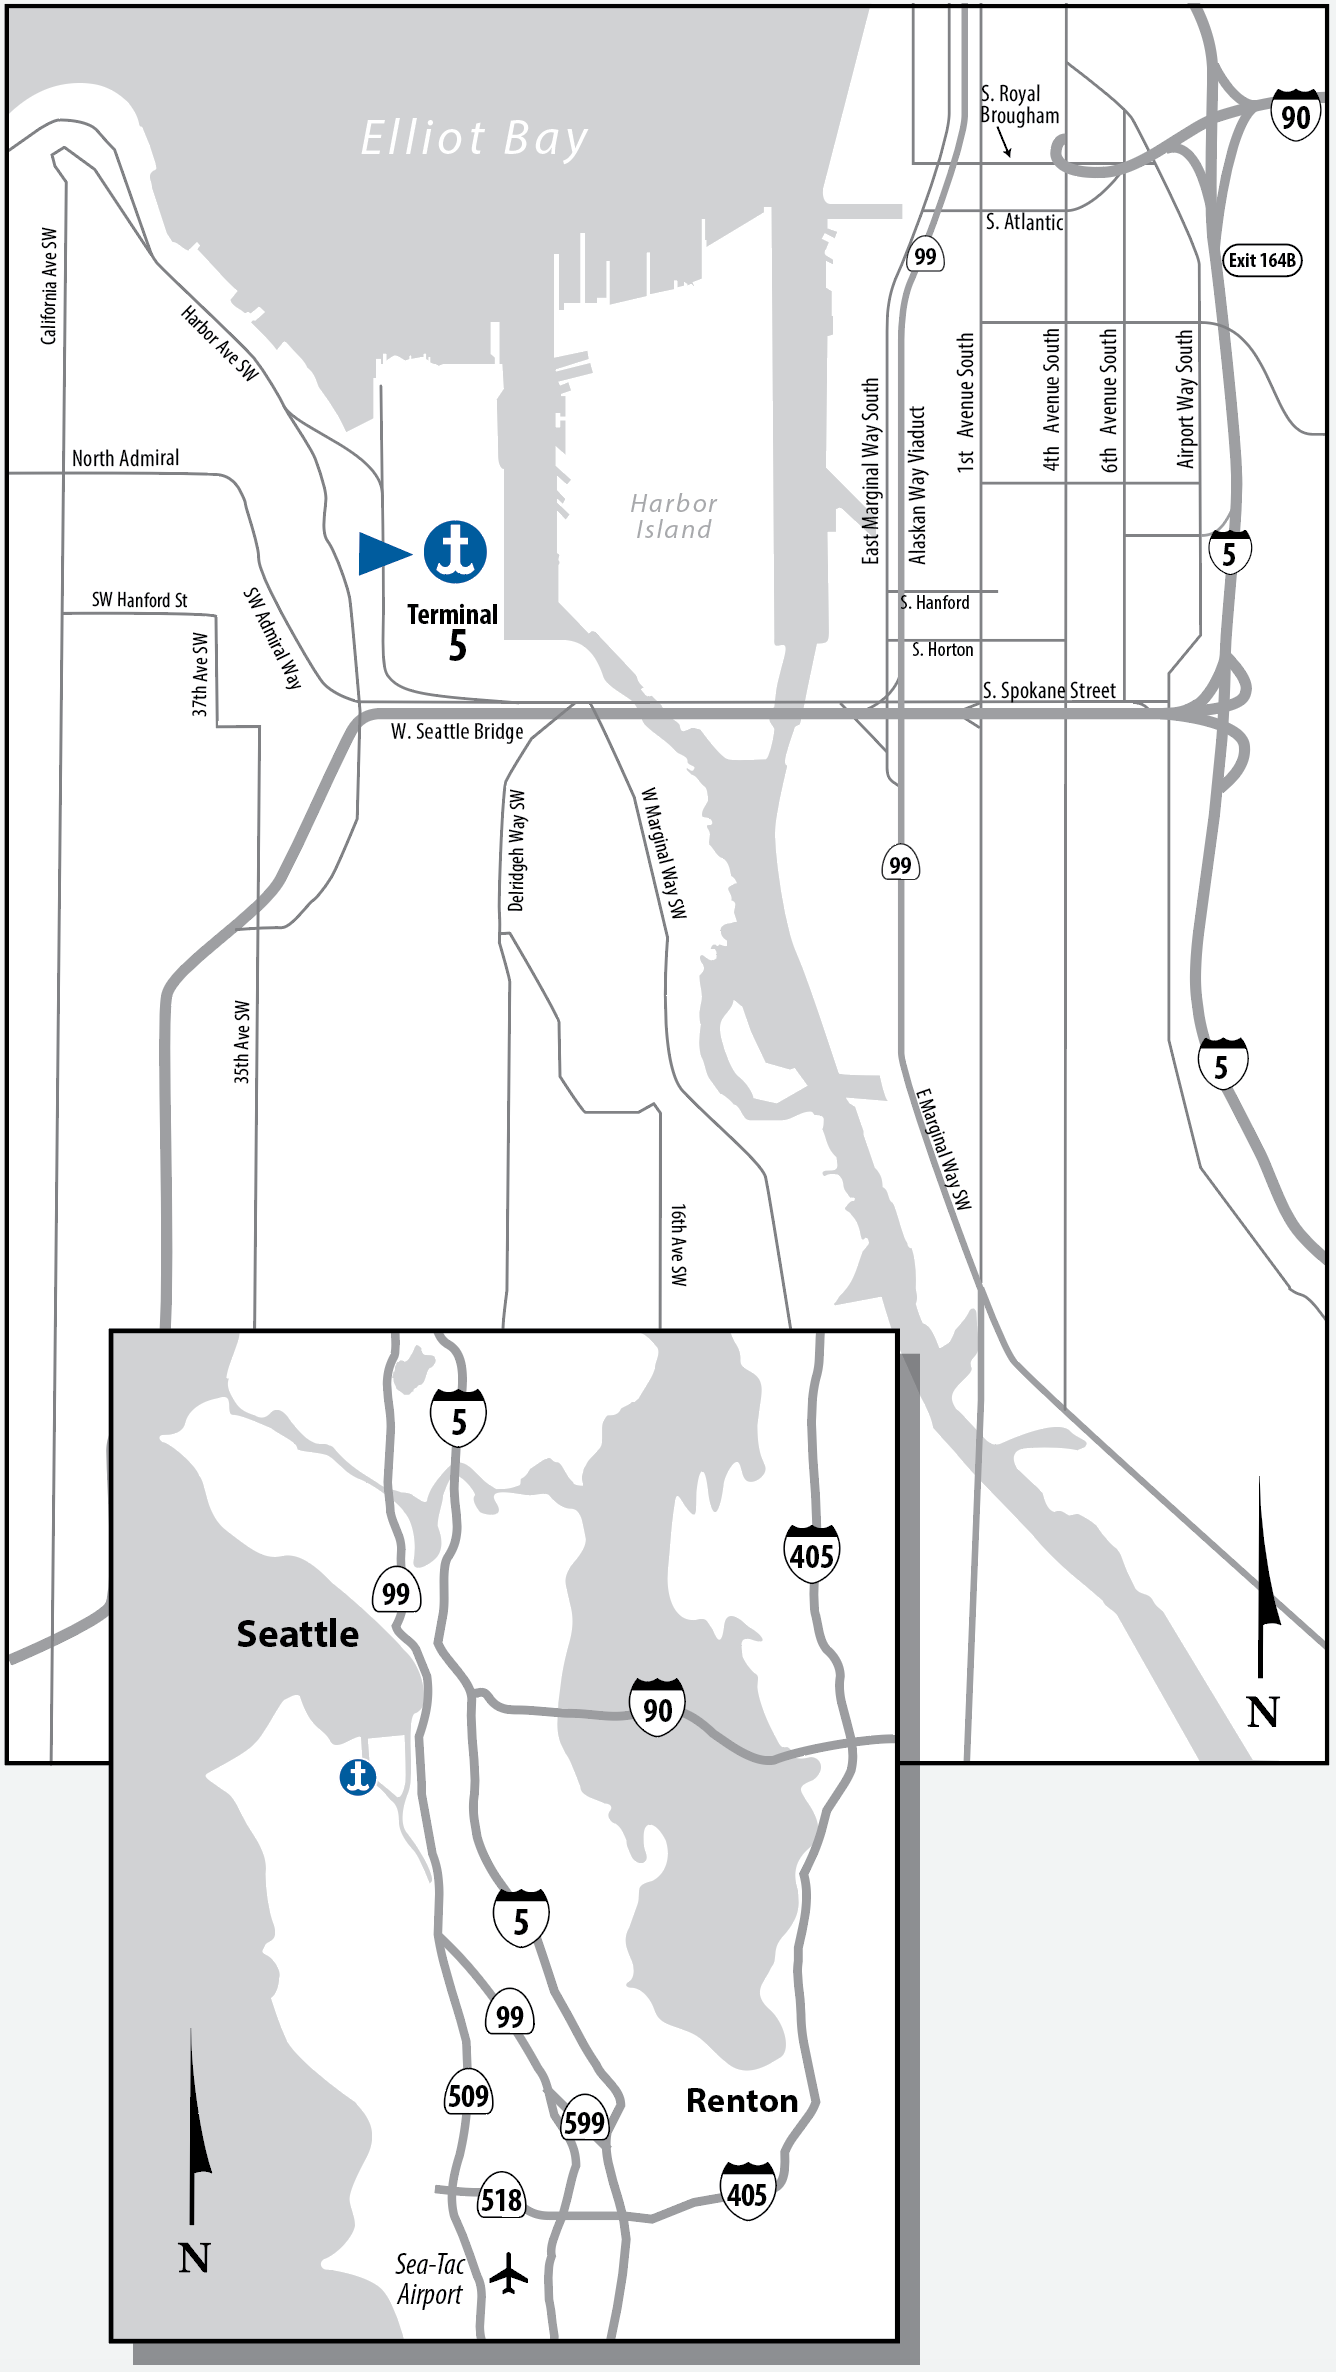 Find Matson at Port of Seattle | MATSON